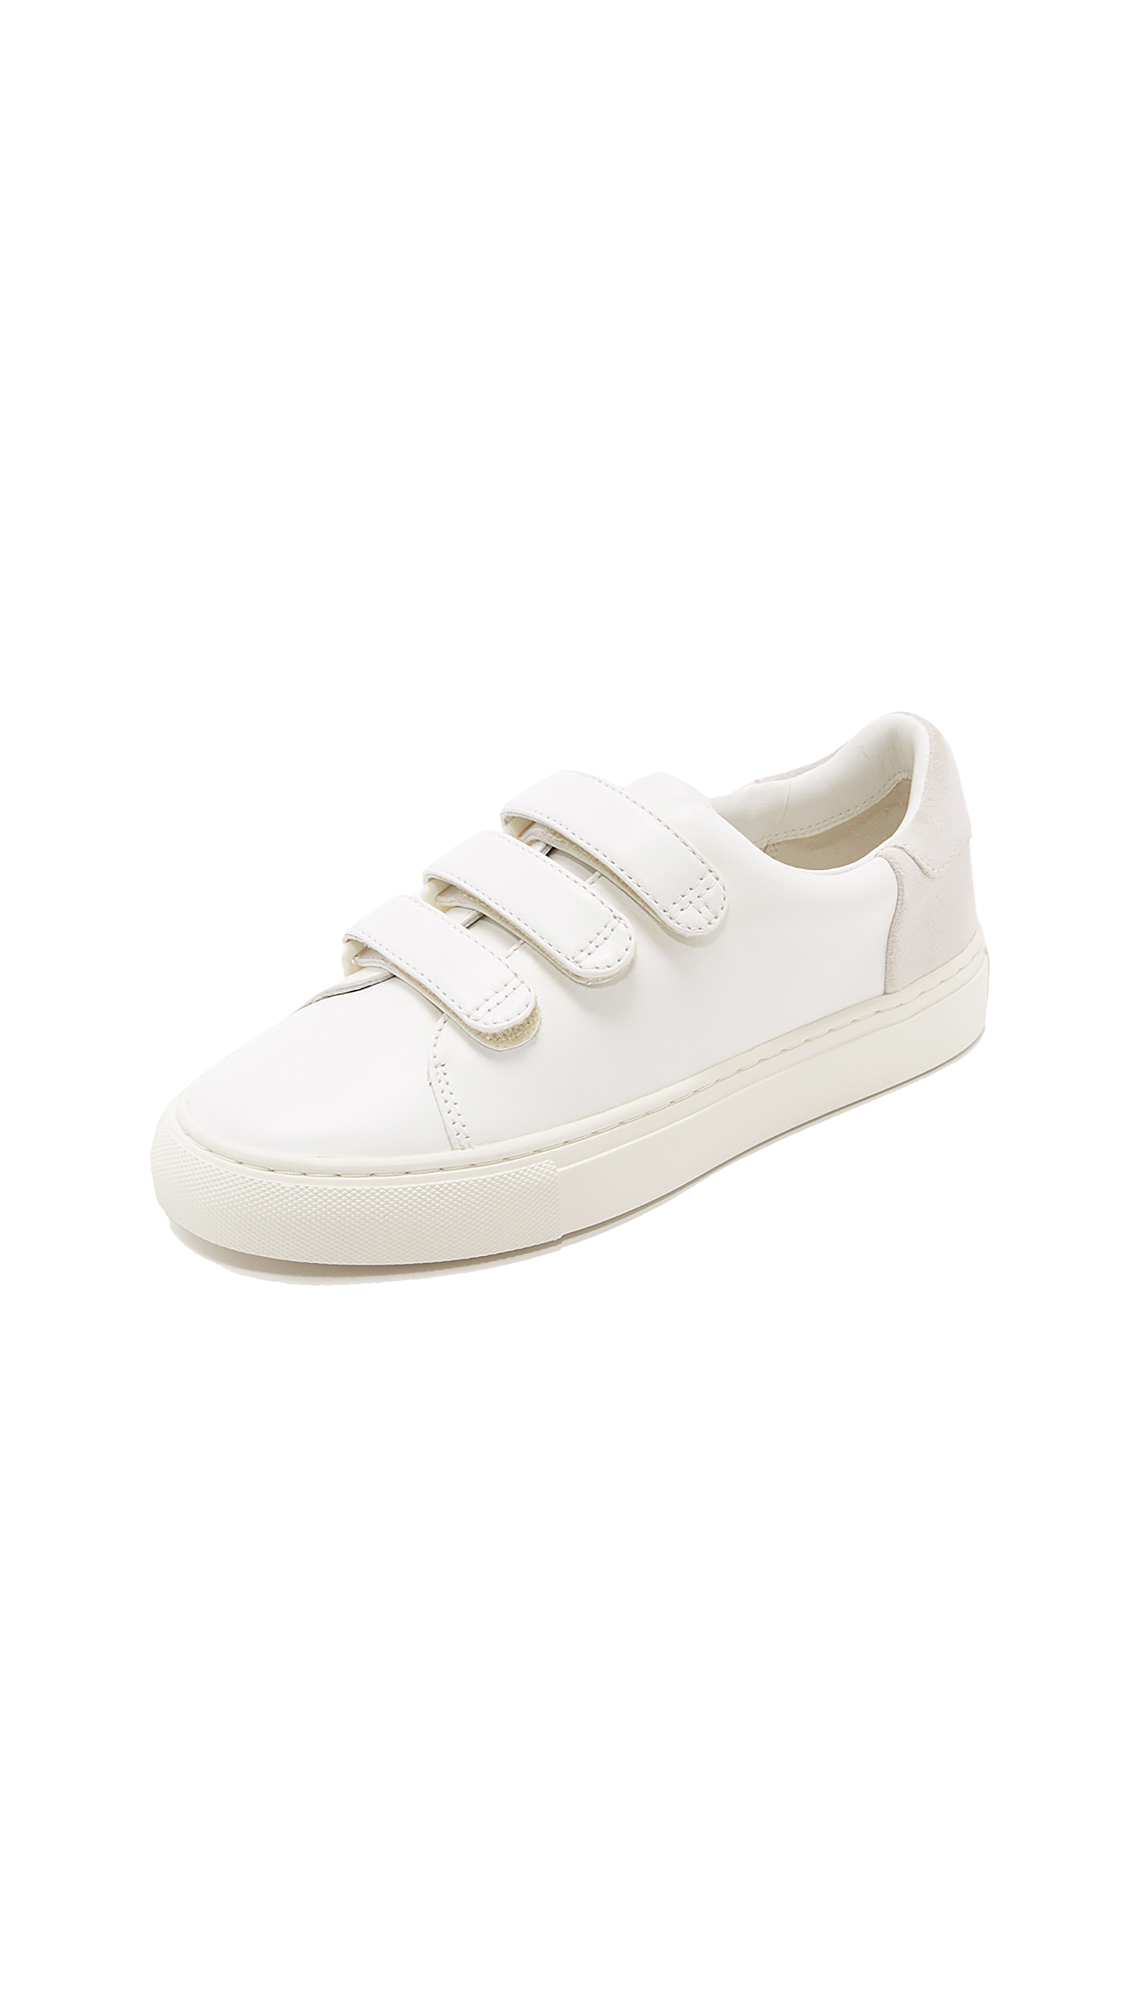 Tory Sport Colorblock Velcro Sneakers - Snow White/Off White